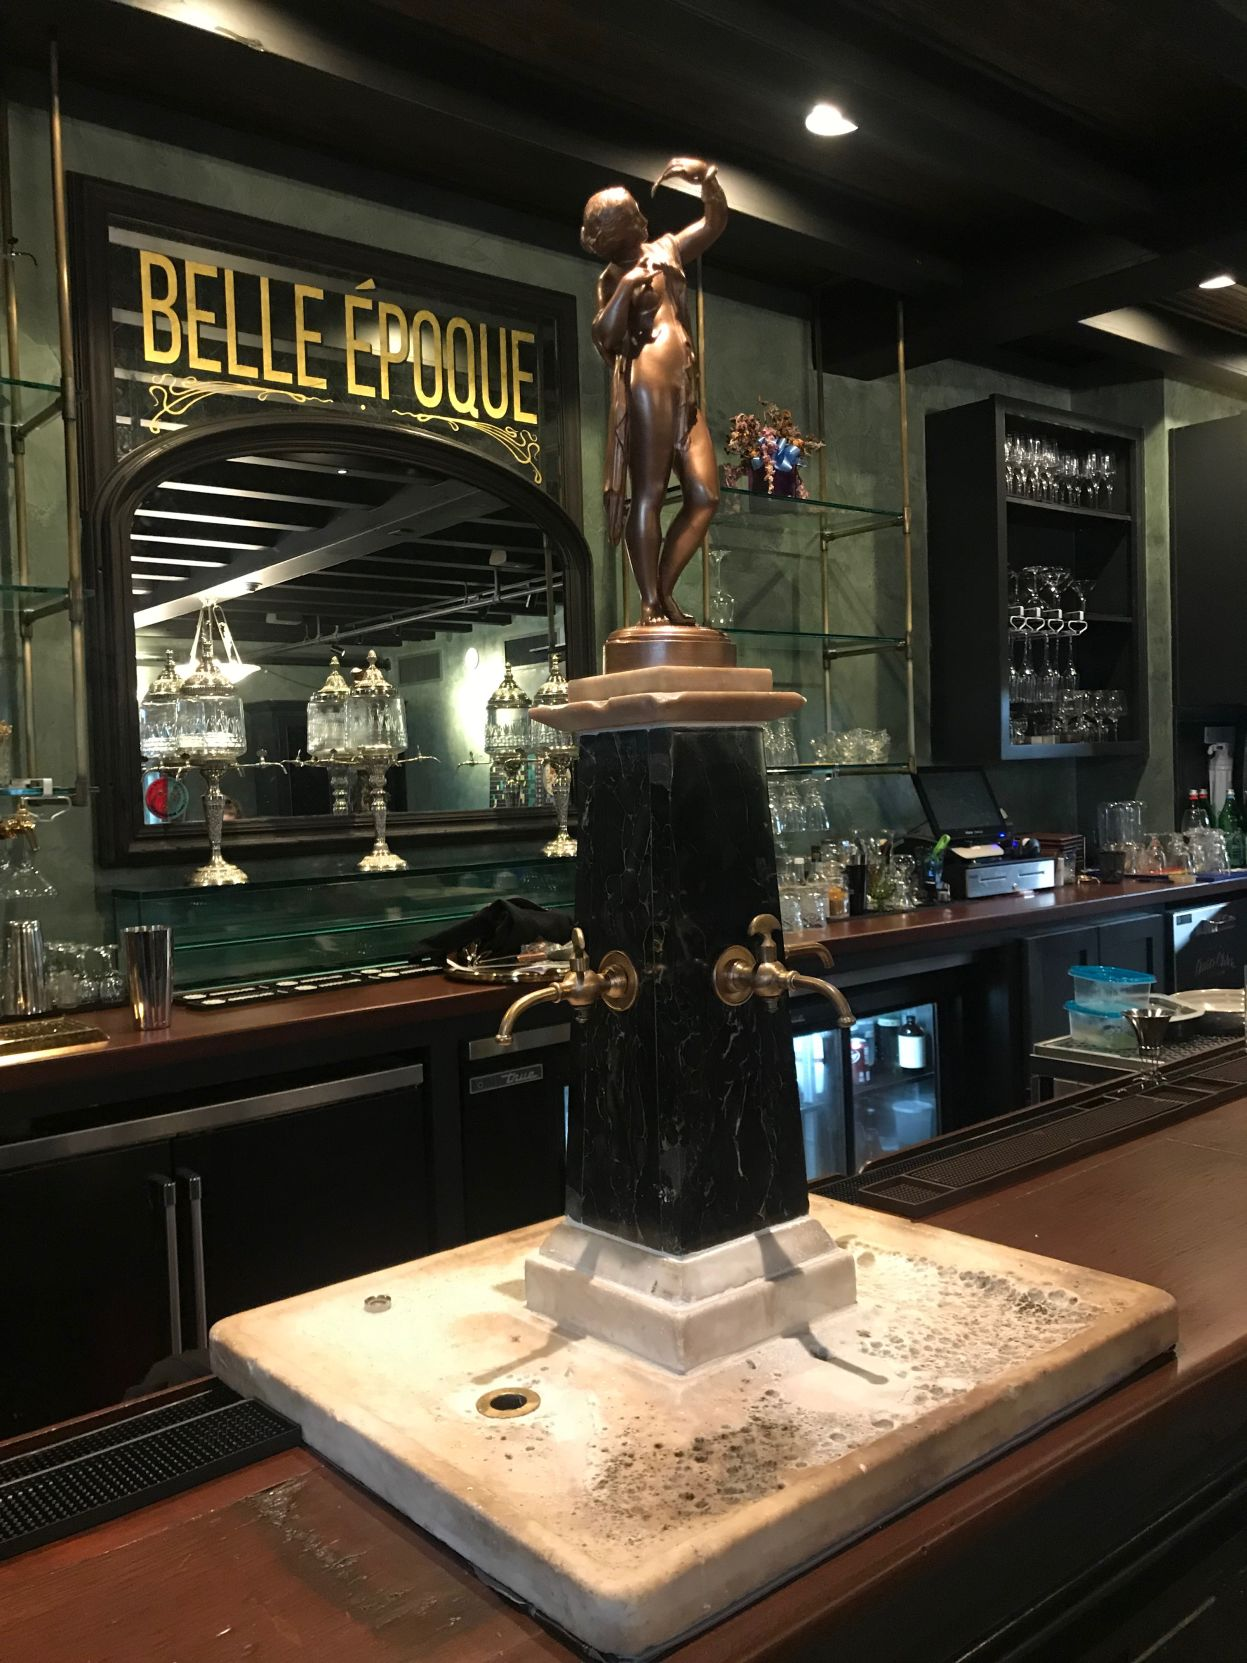 Belle Epoque Absinthe Bar opens Oct. 17 in the French Quarter